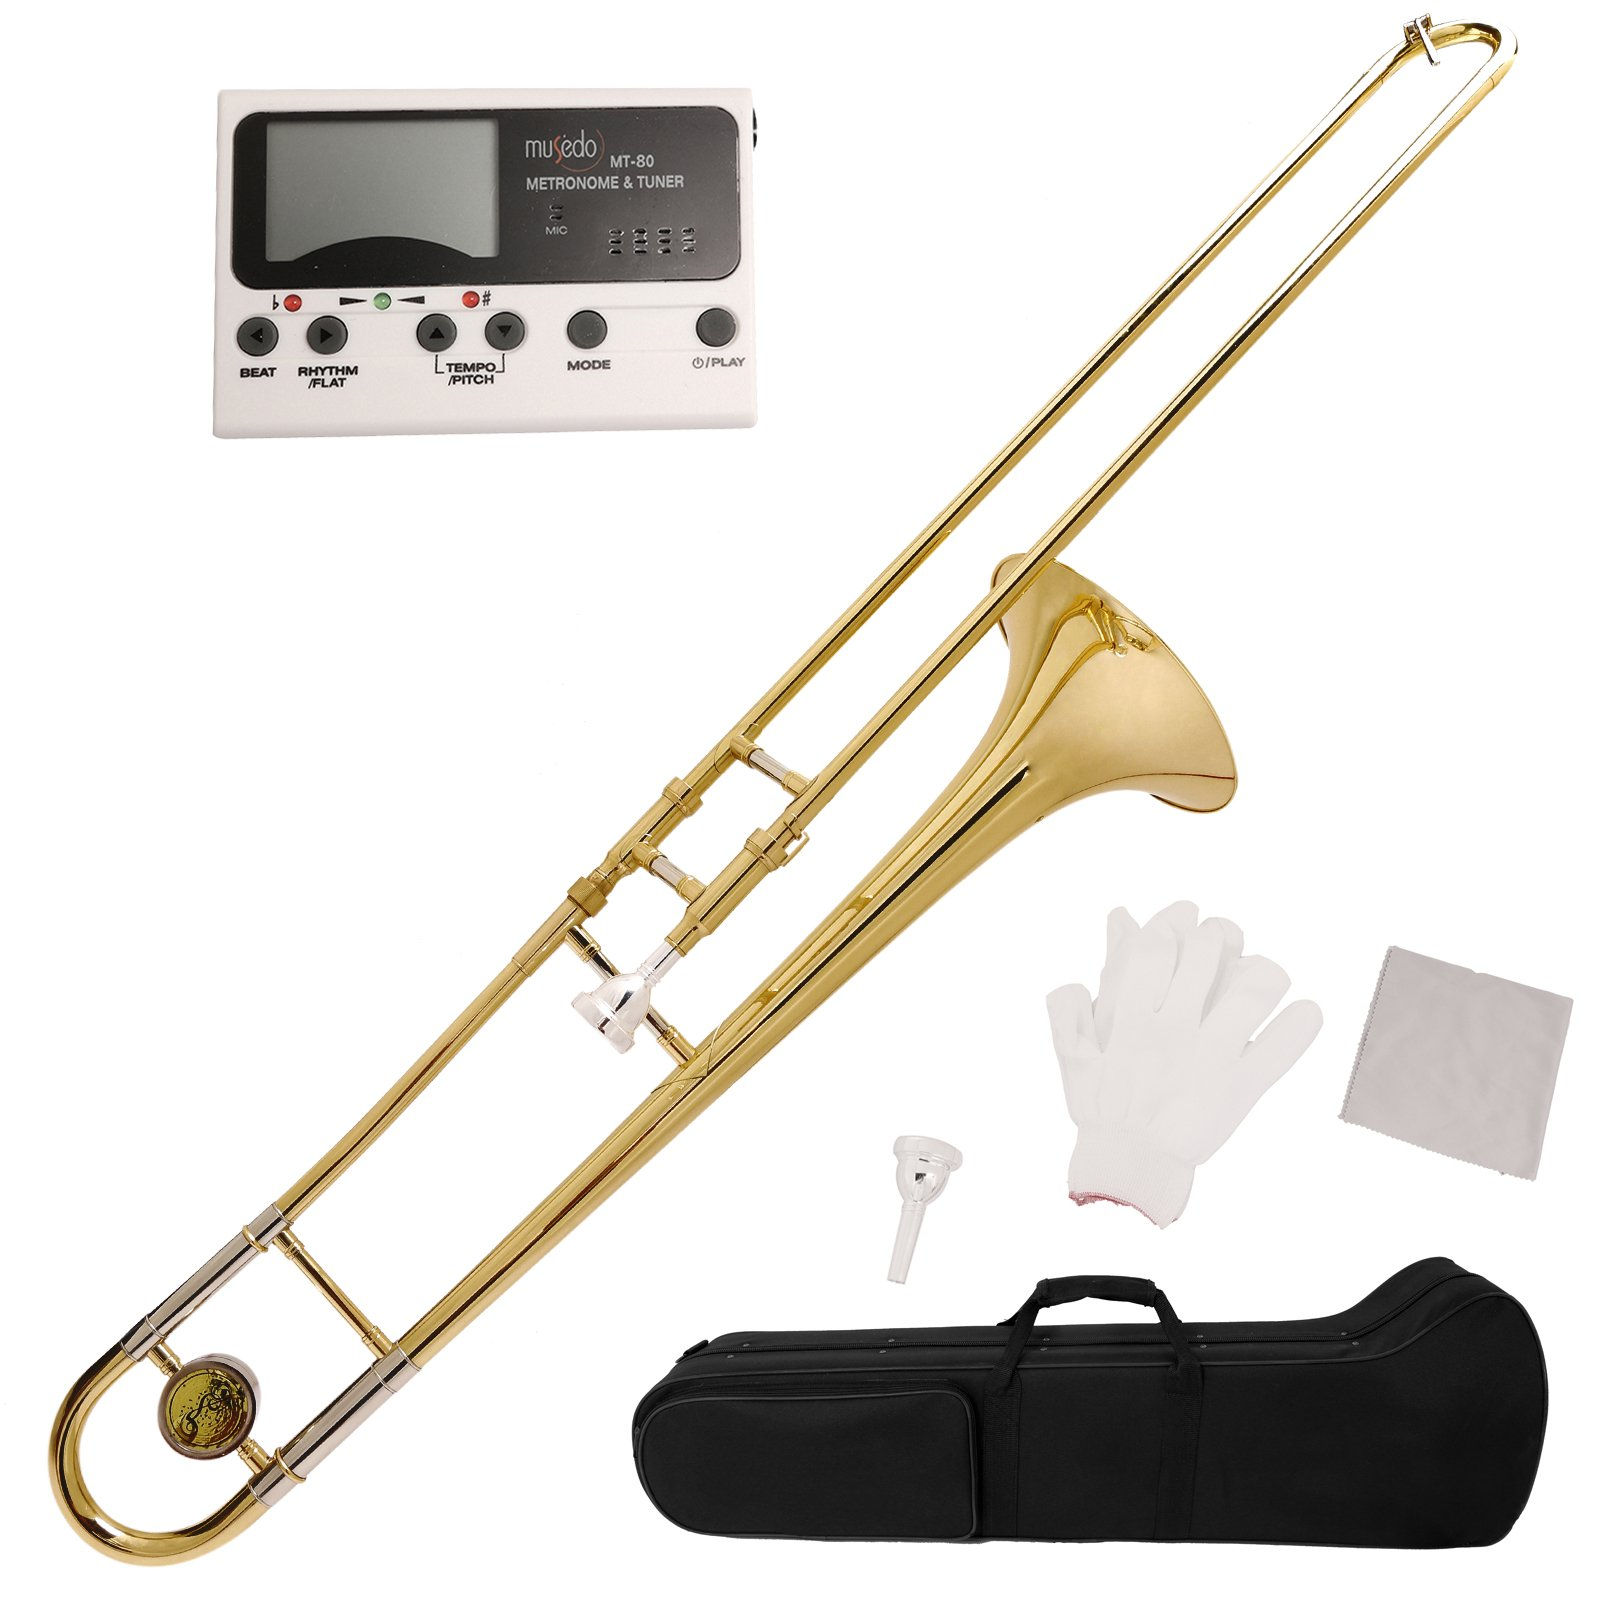 LAGRIMA Bb Slide Flat Tenor Trombone Gold Brass with Case MetroTuner Mouthpiece Care Kit for School Band Student